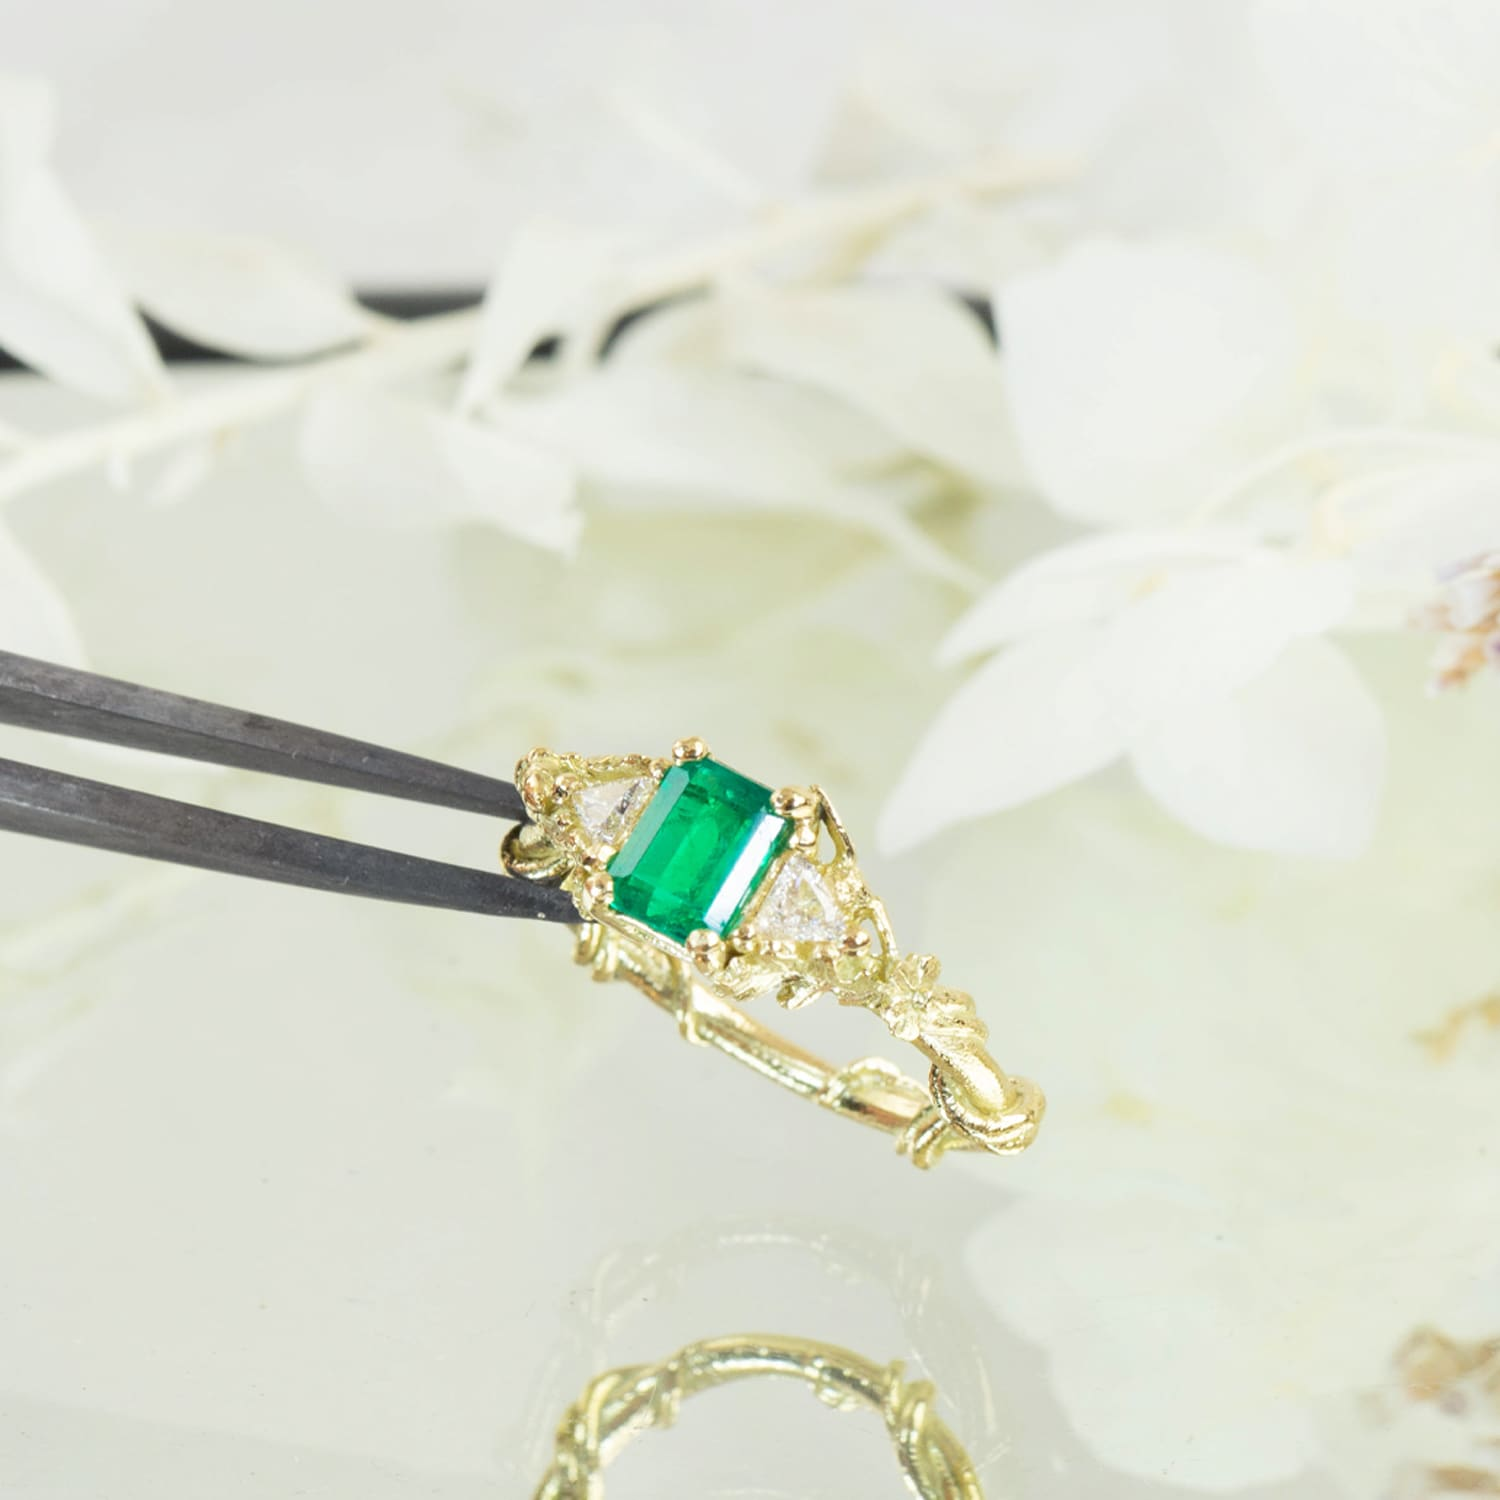 emerald gemstone 18ct yellow gold bespoke design engagement ring shown held in jewellers pliers against white petals